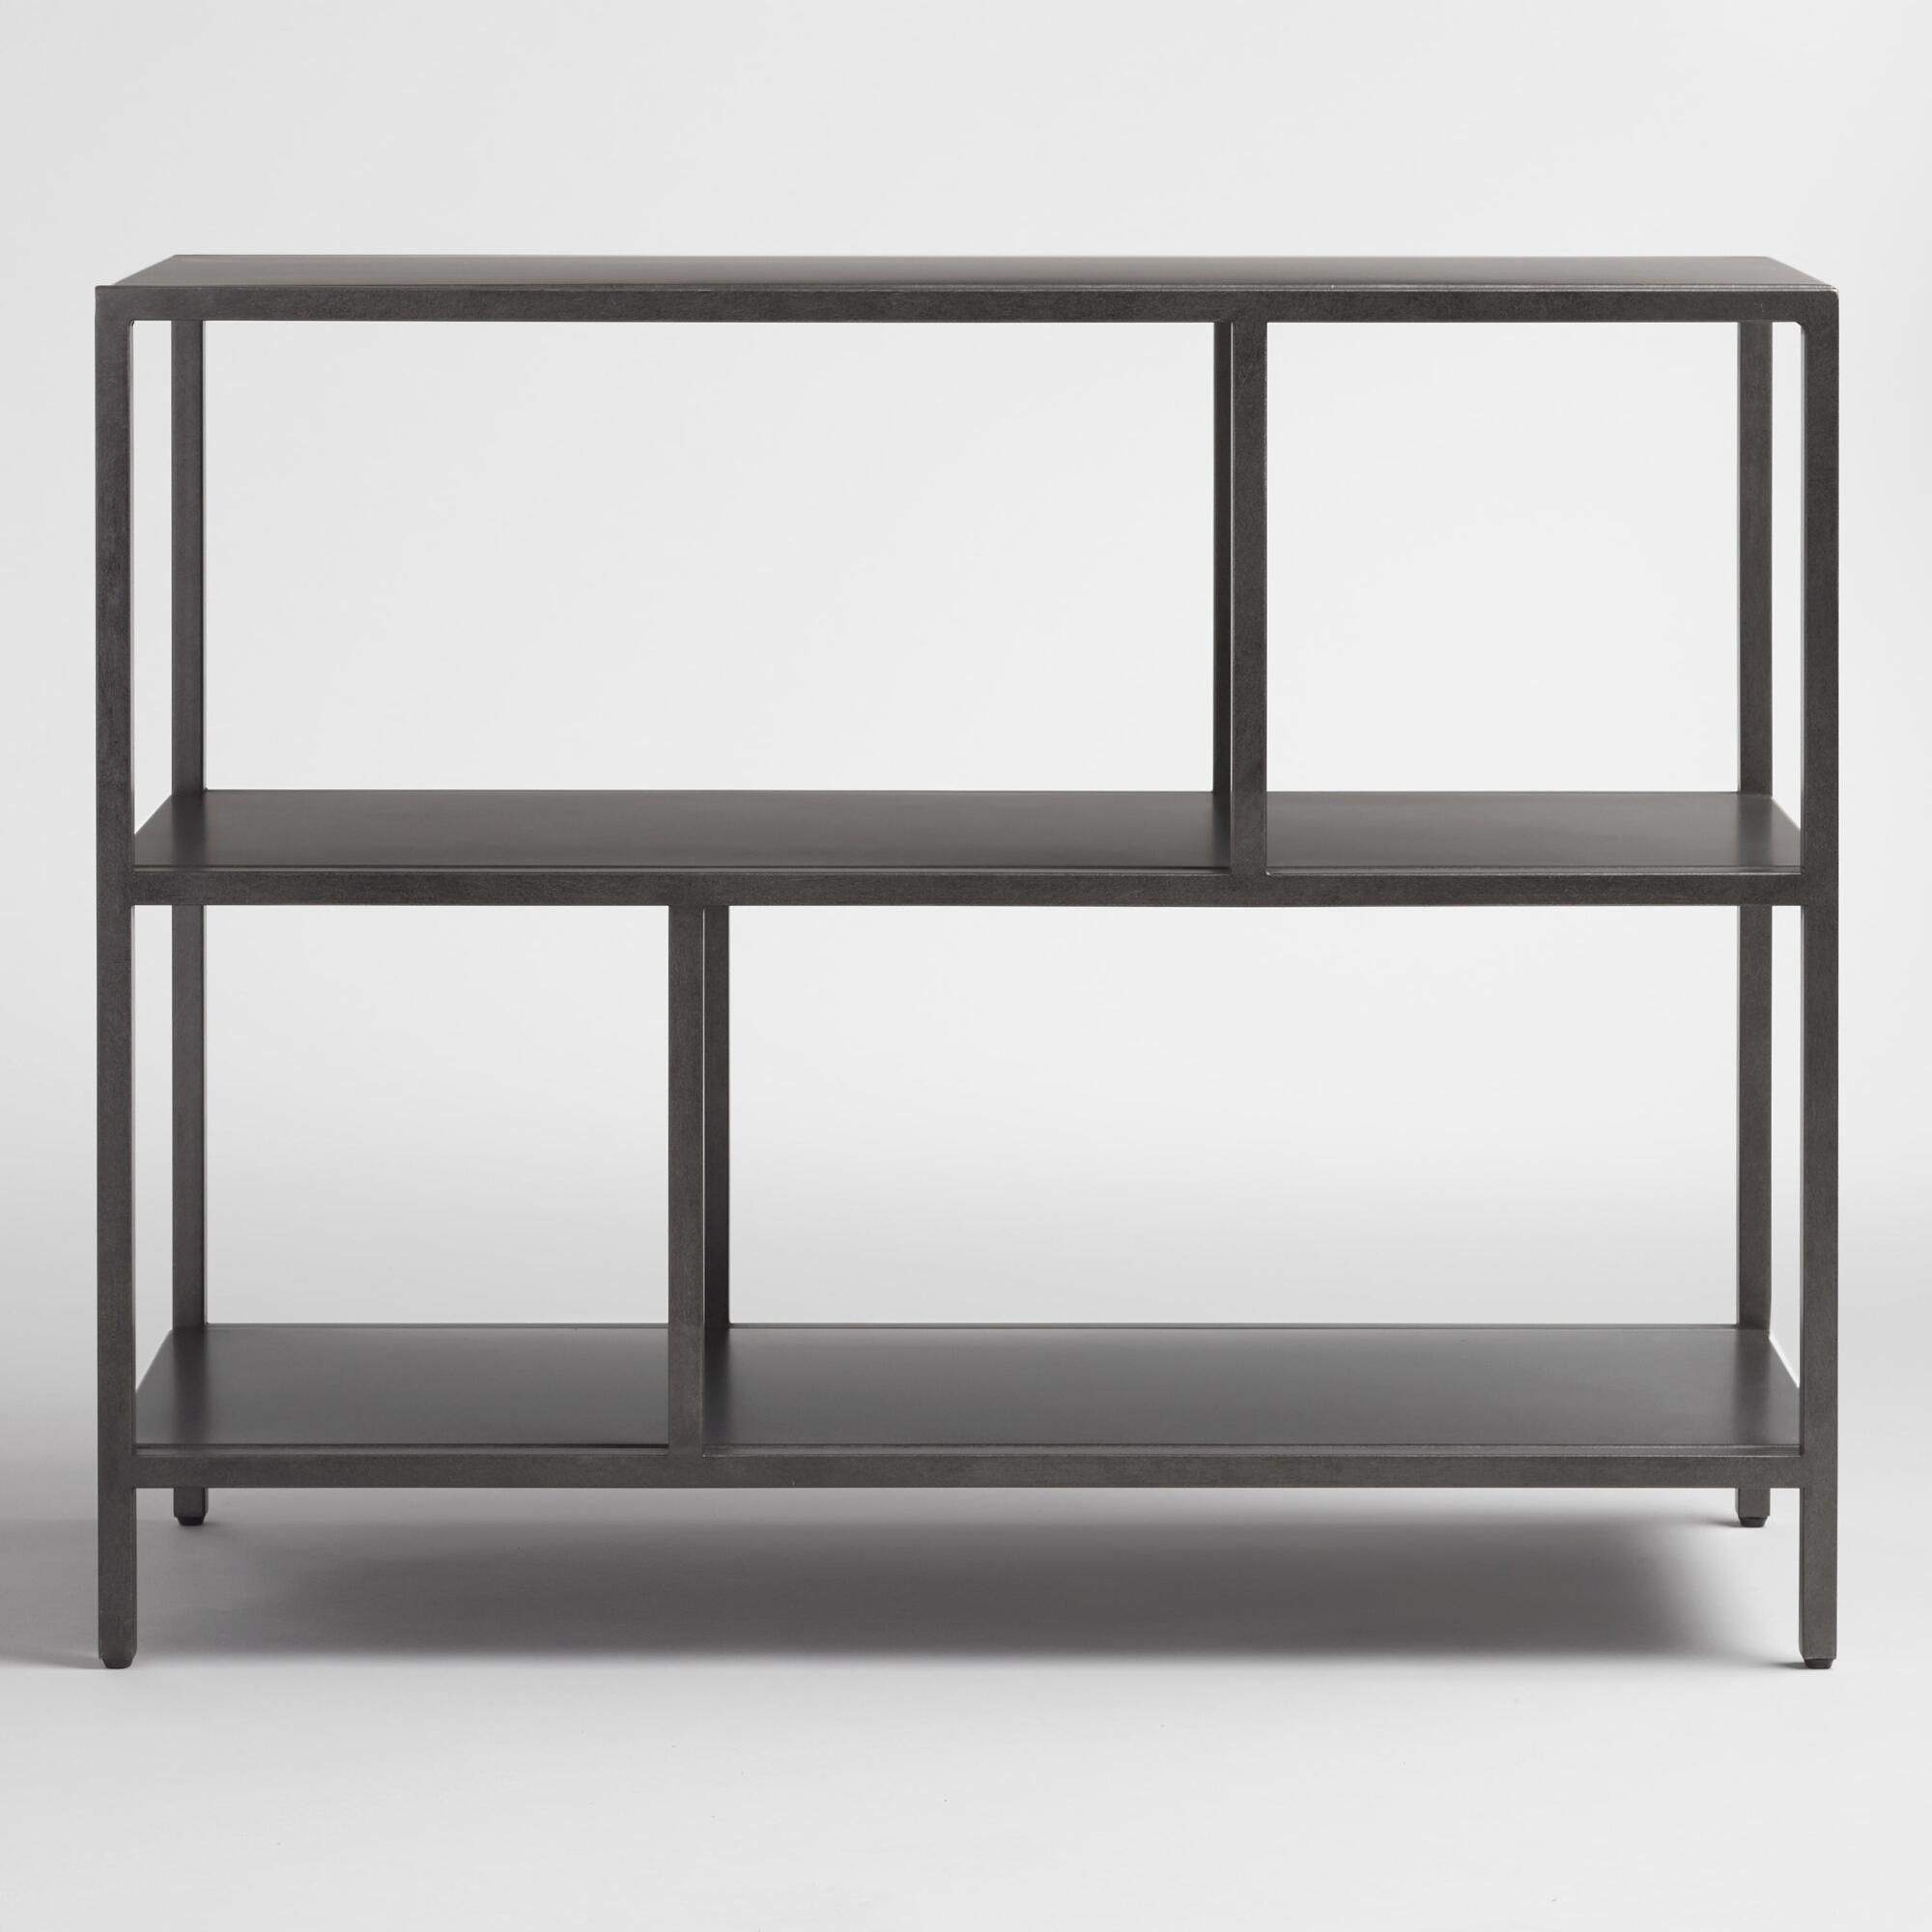 with by calallen inverted furniture item modern products christi shelf open wilcox supports coaster shelves bookcase corpus bookshelf bookcases kingsville